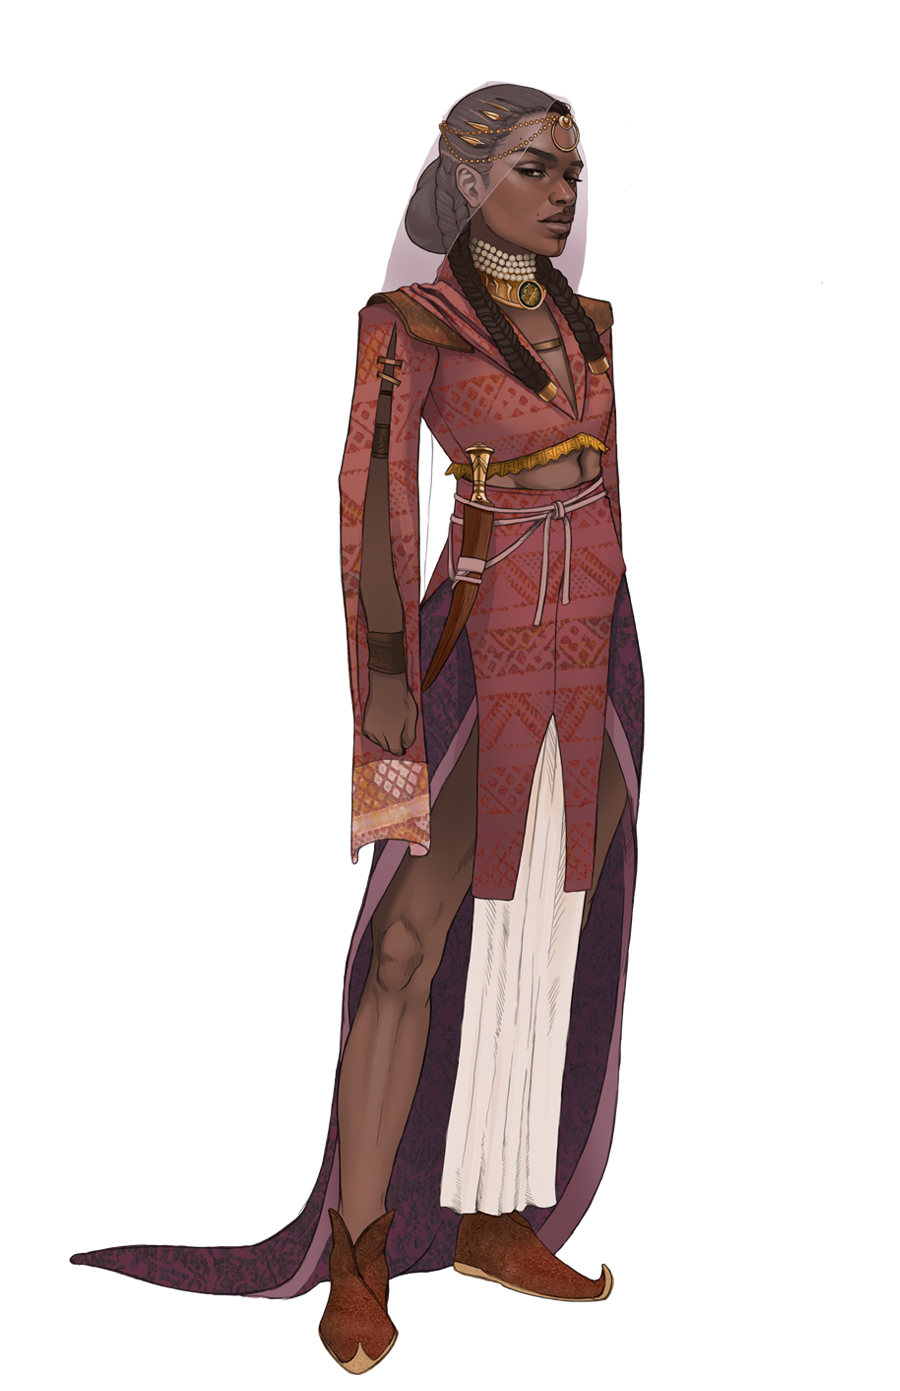 An image of the player character, The Princess